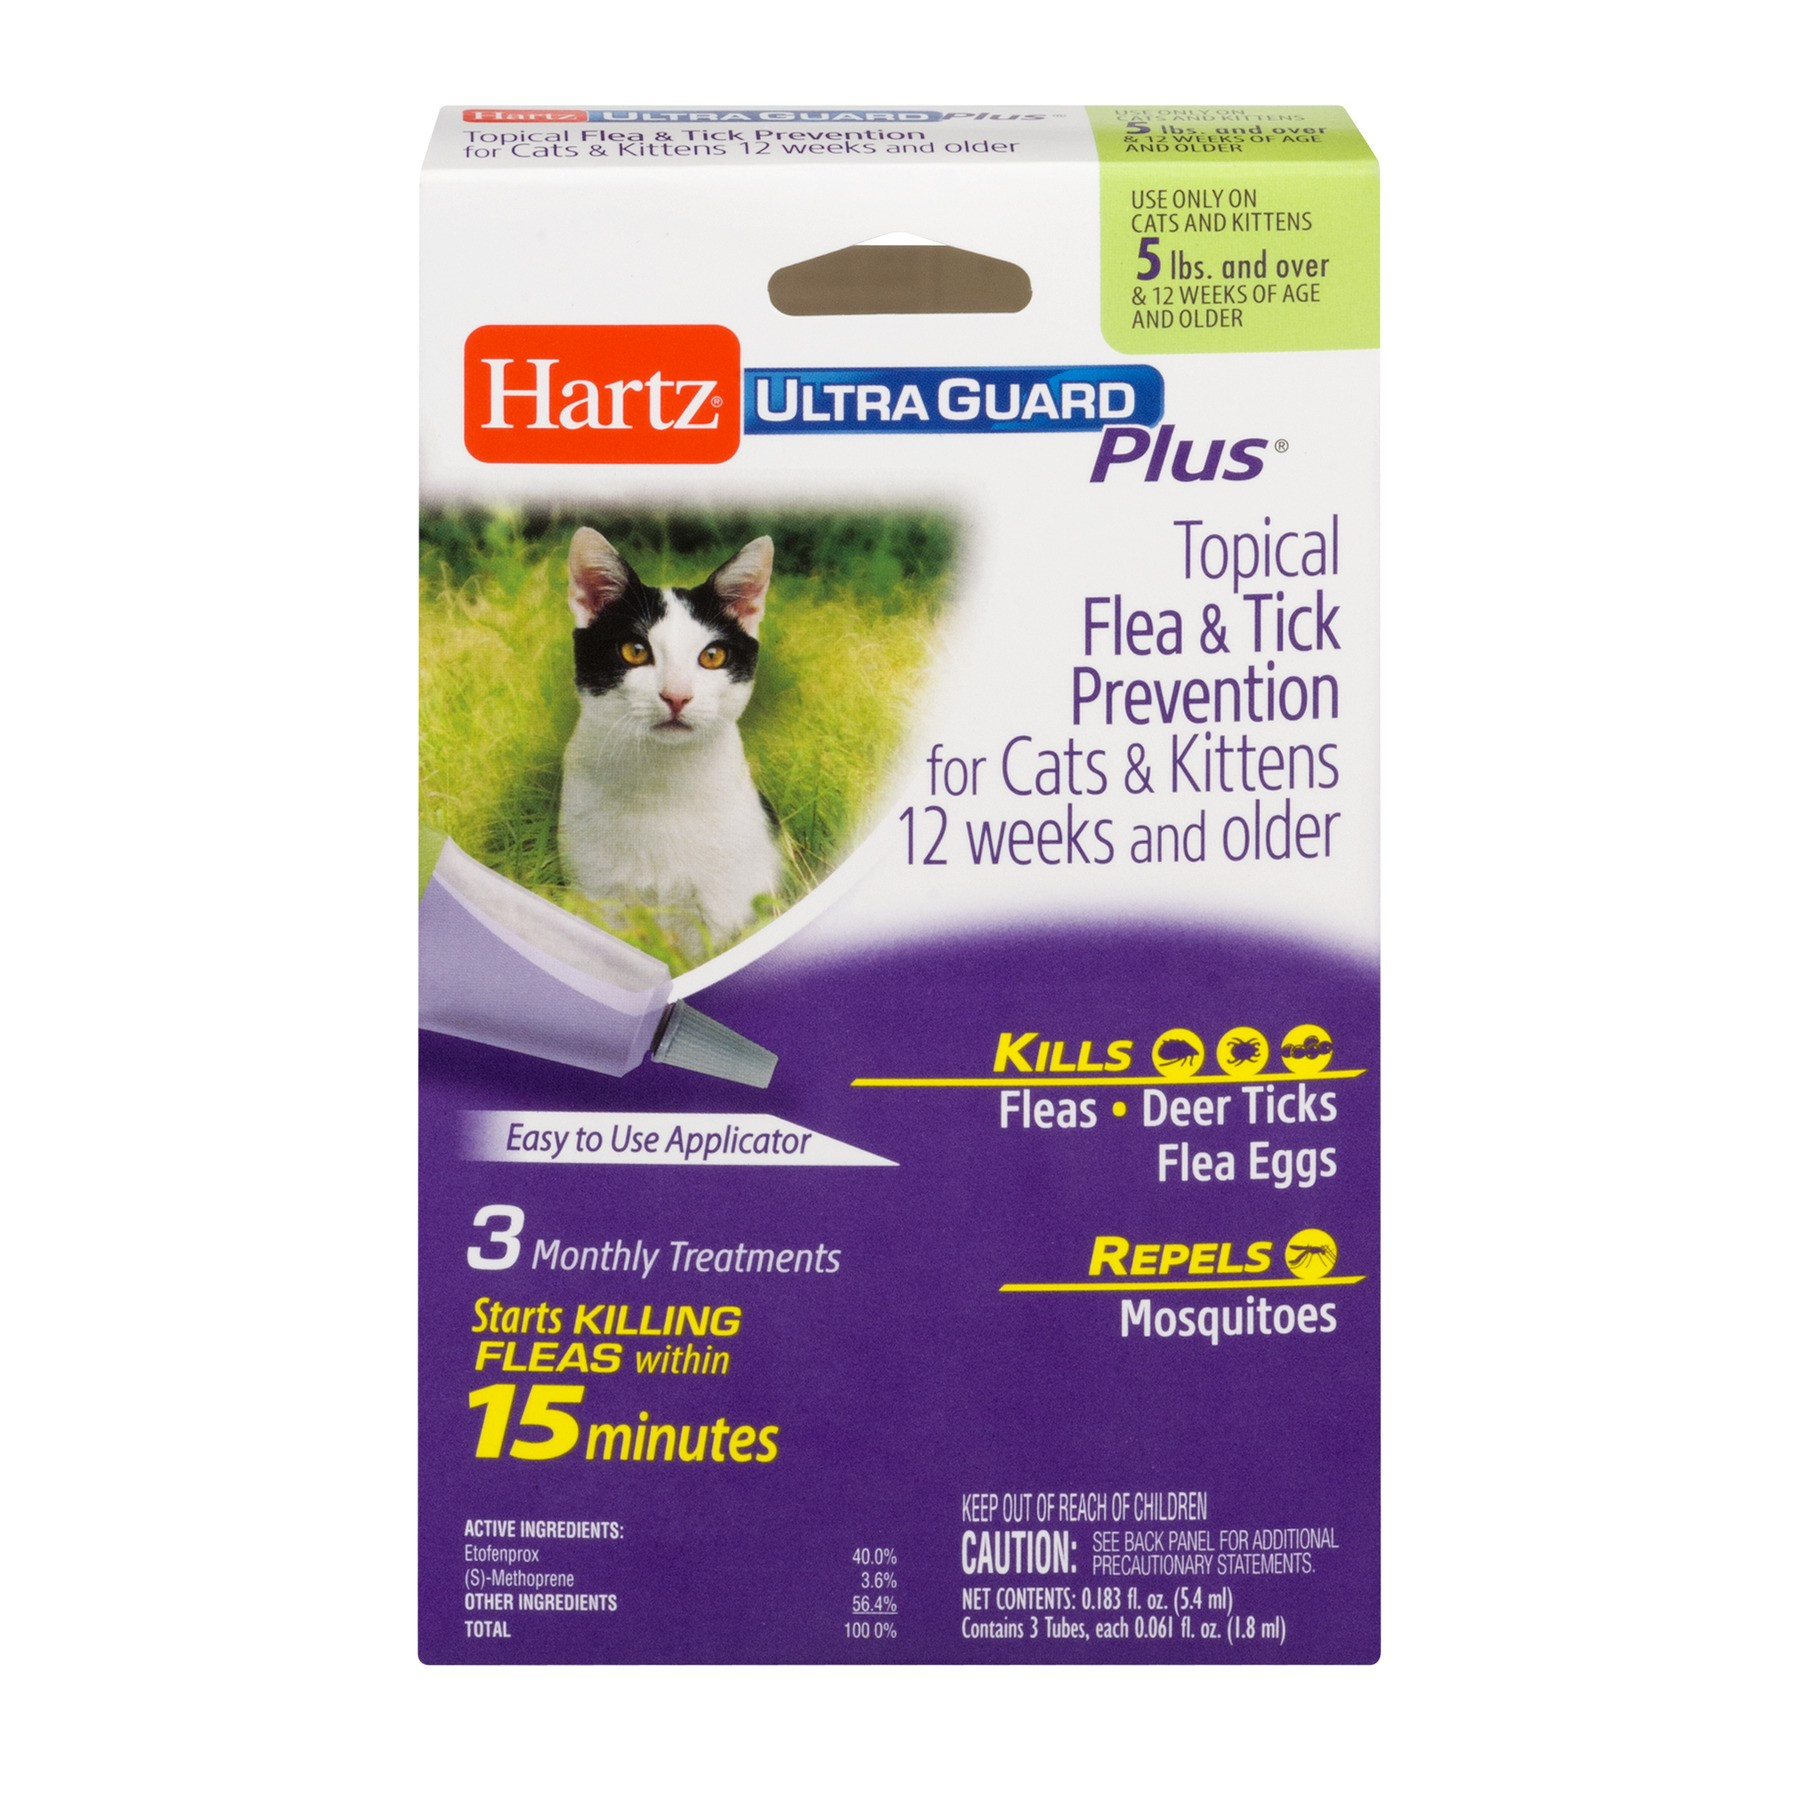 Hartz UltraGuard Plus Topical Flea & Tick Prevention for Cats & Kittens, 3 Monthly Treatments